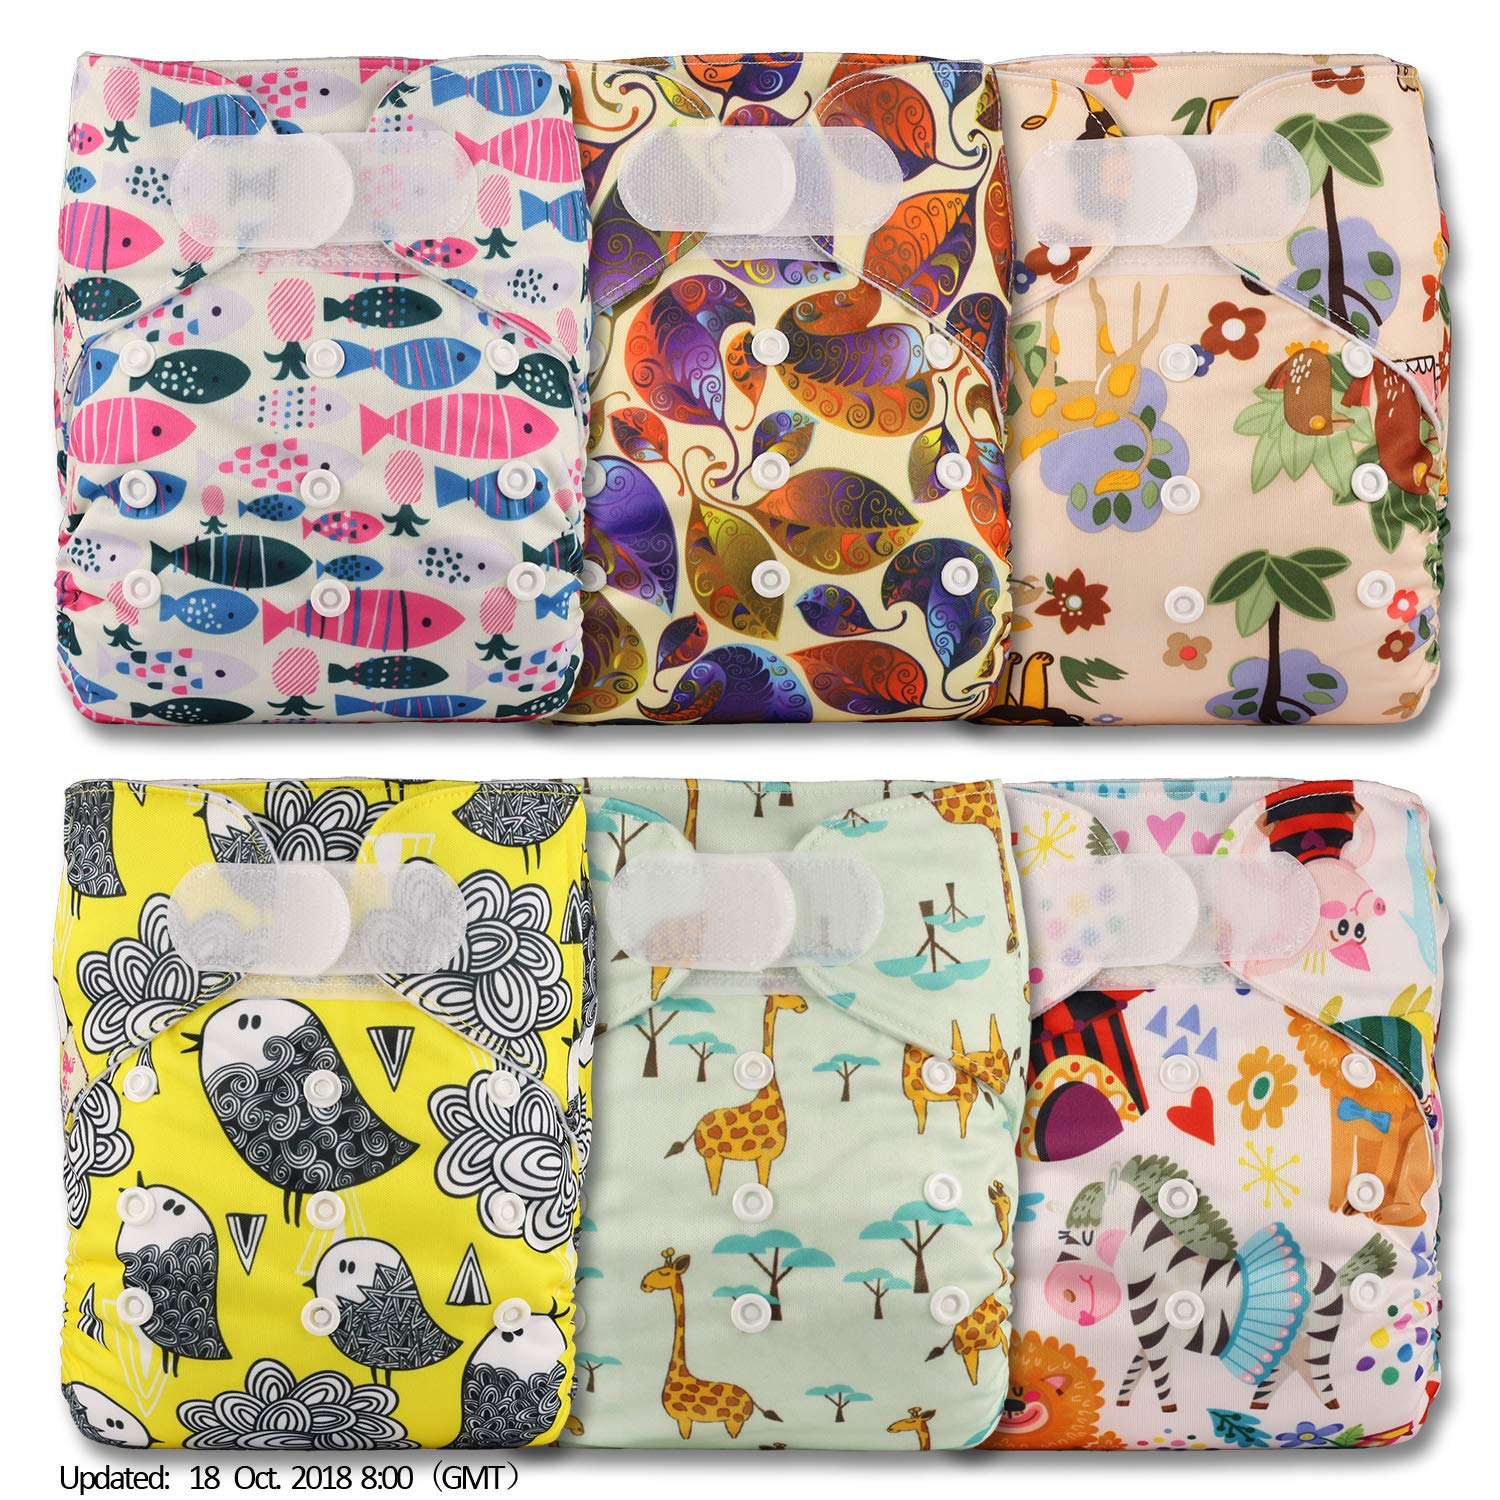 Littles & Bloomz, Reusable Pocket Cloth Nappy, Fastener: Hook-Loop, Set of 6, Patterns 608, With 6 Bamboo Inserts